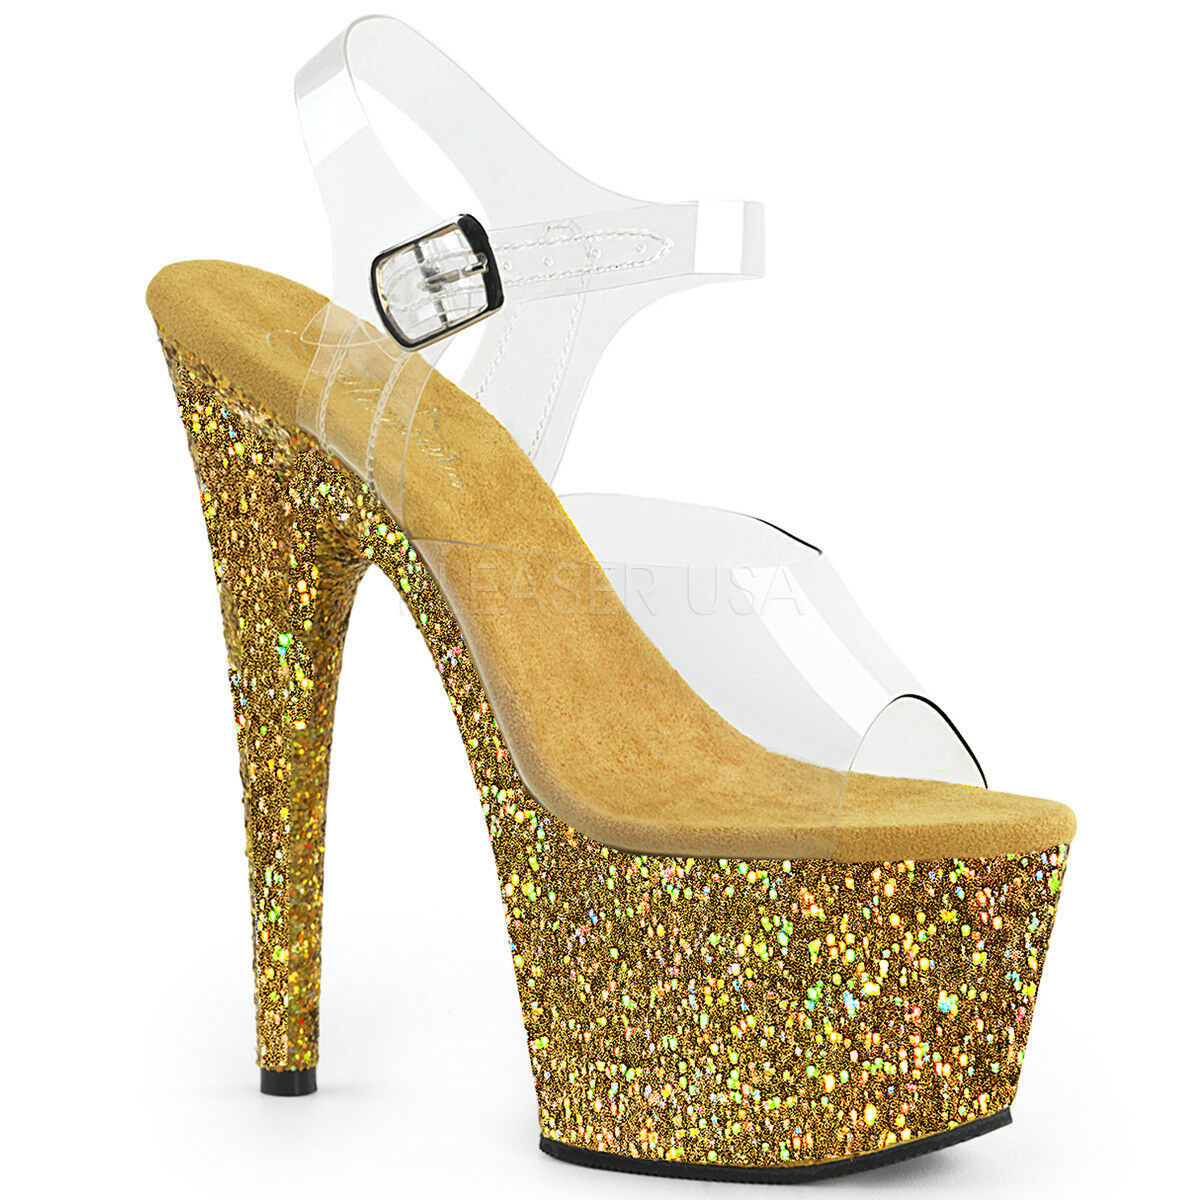 Pleaser ADORE-708LG Strap Exotic Dancing PF Ankle Strap ADORE-708LG Sandale Holographic Glitters 67aa8e